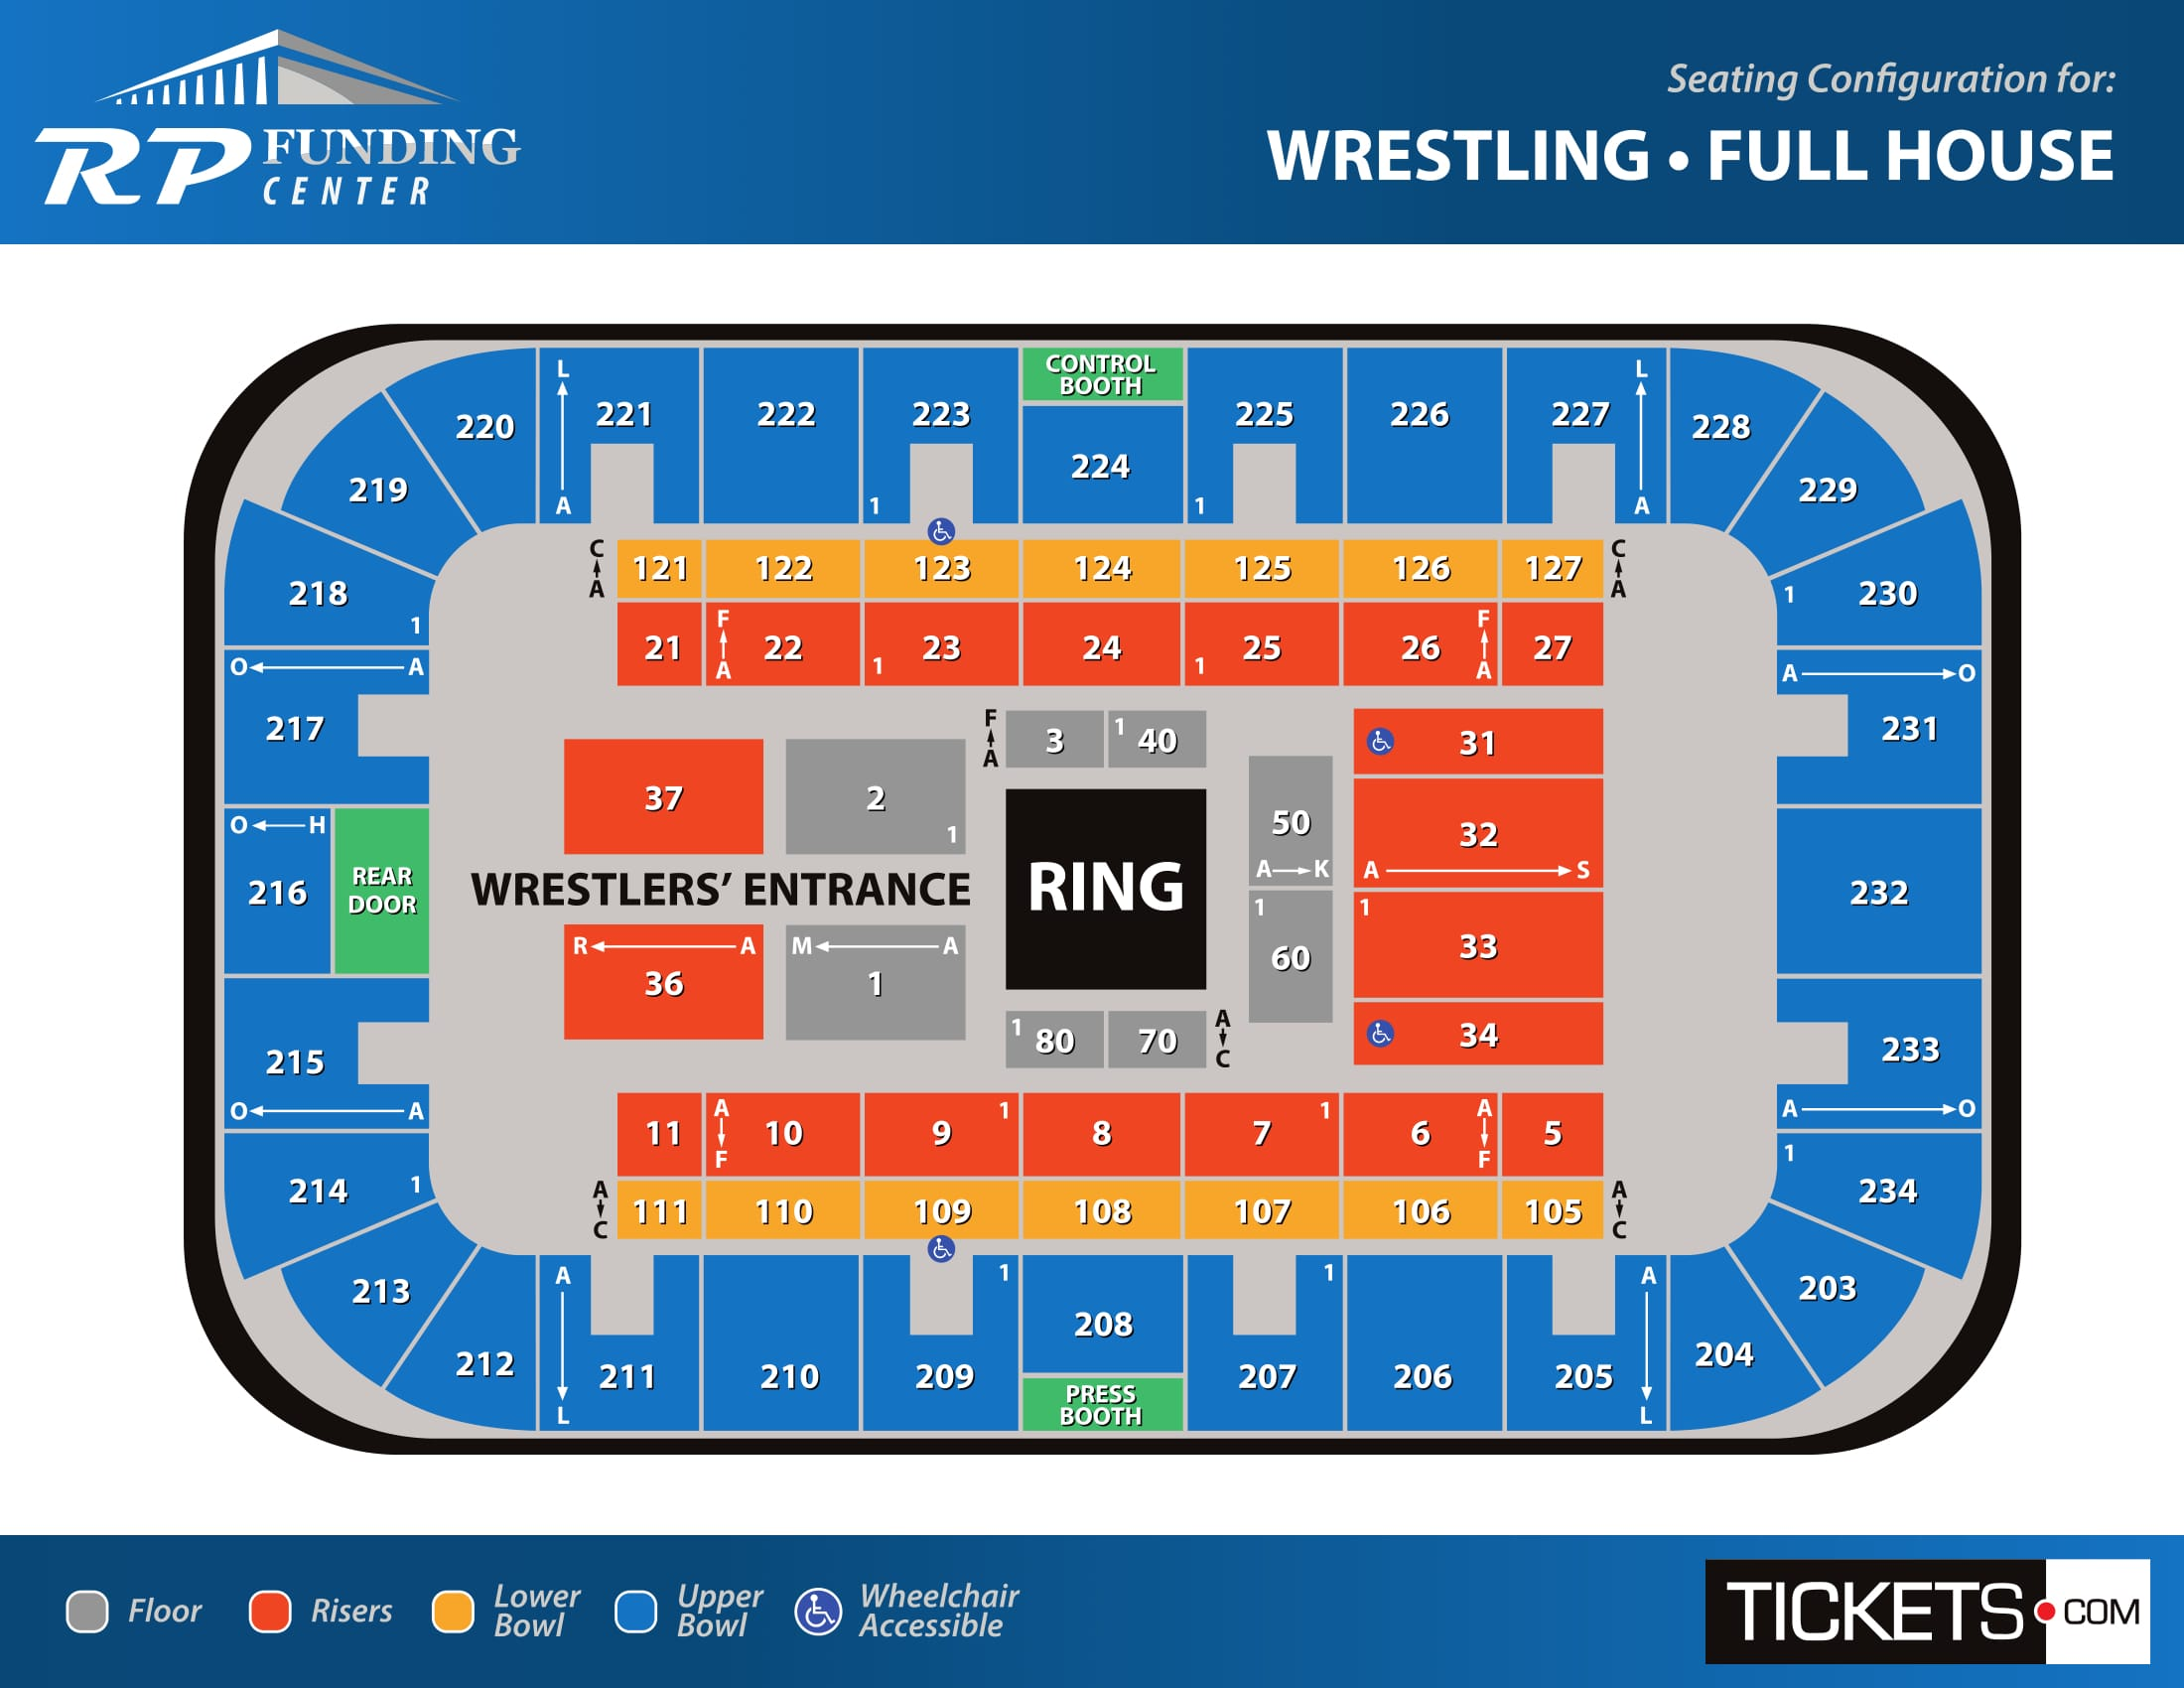 Wrestling - Full House seating map